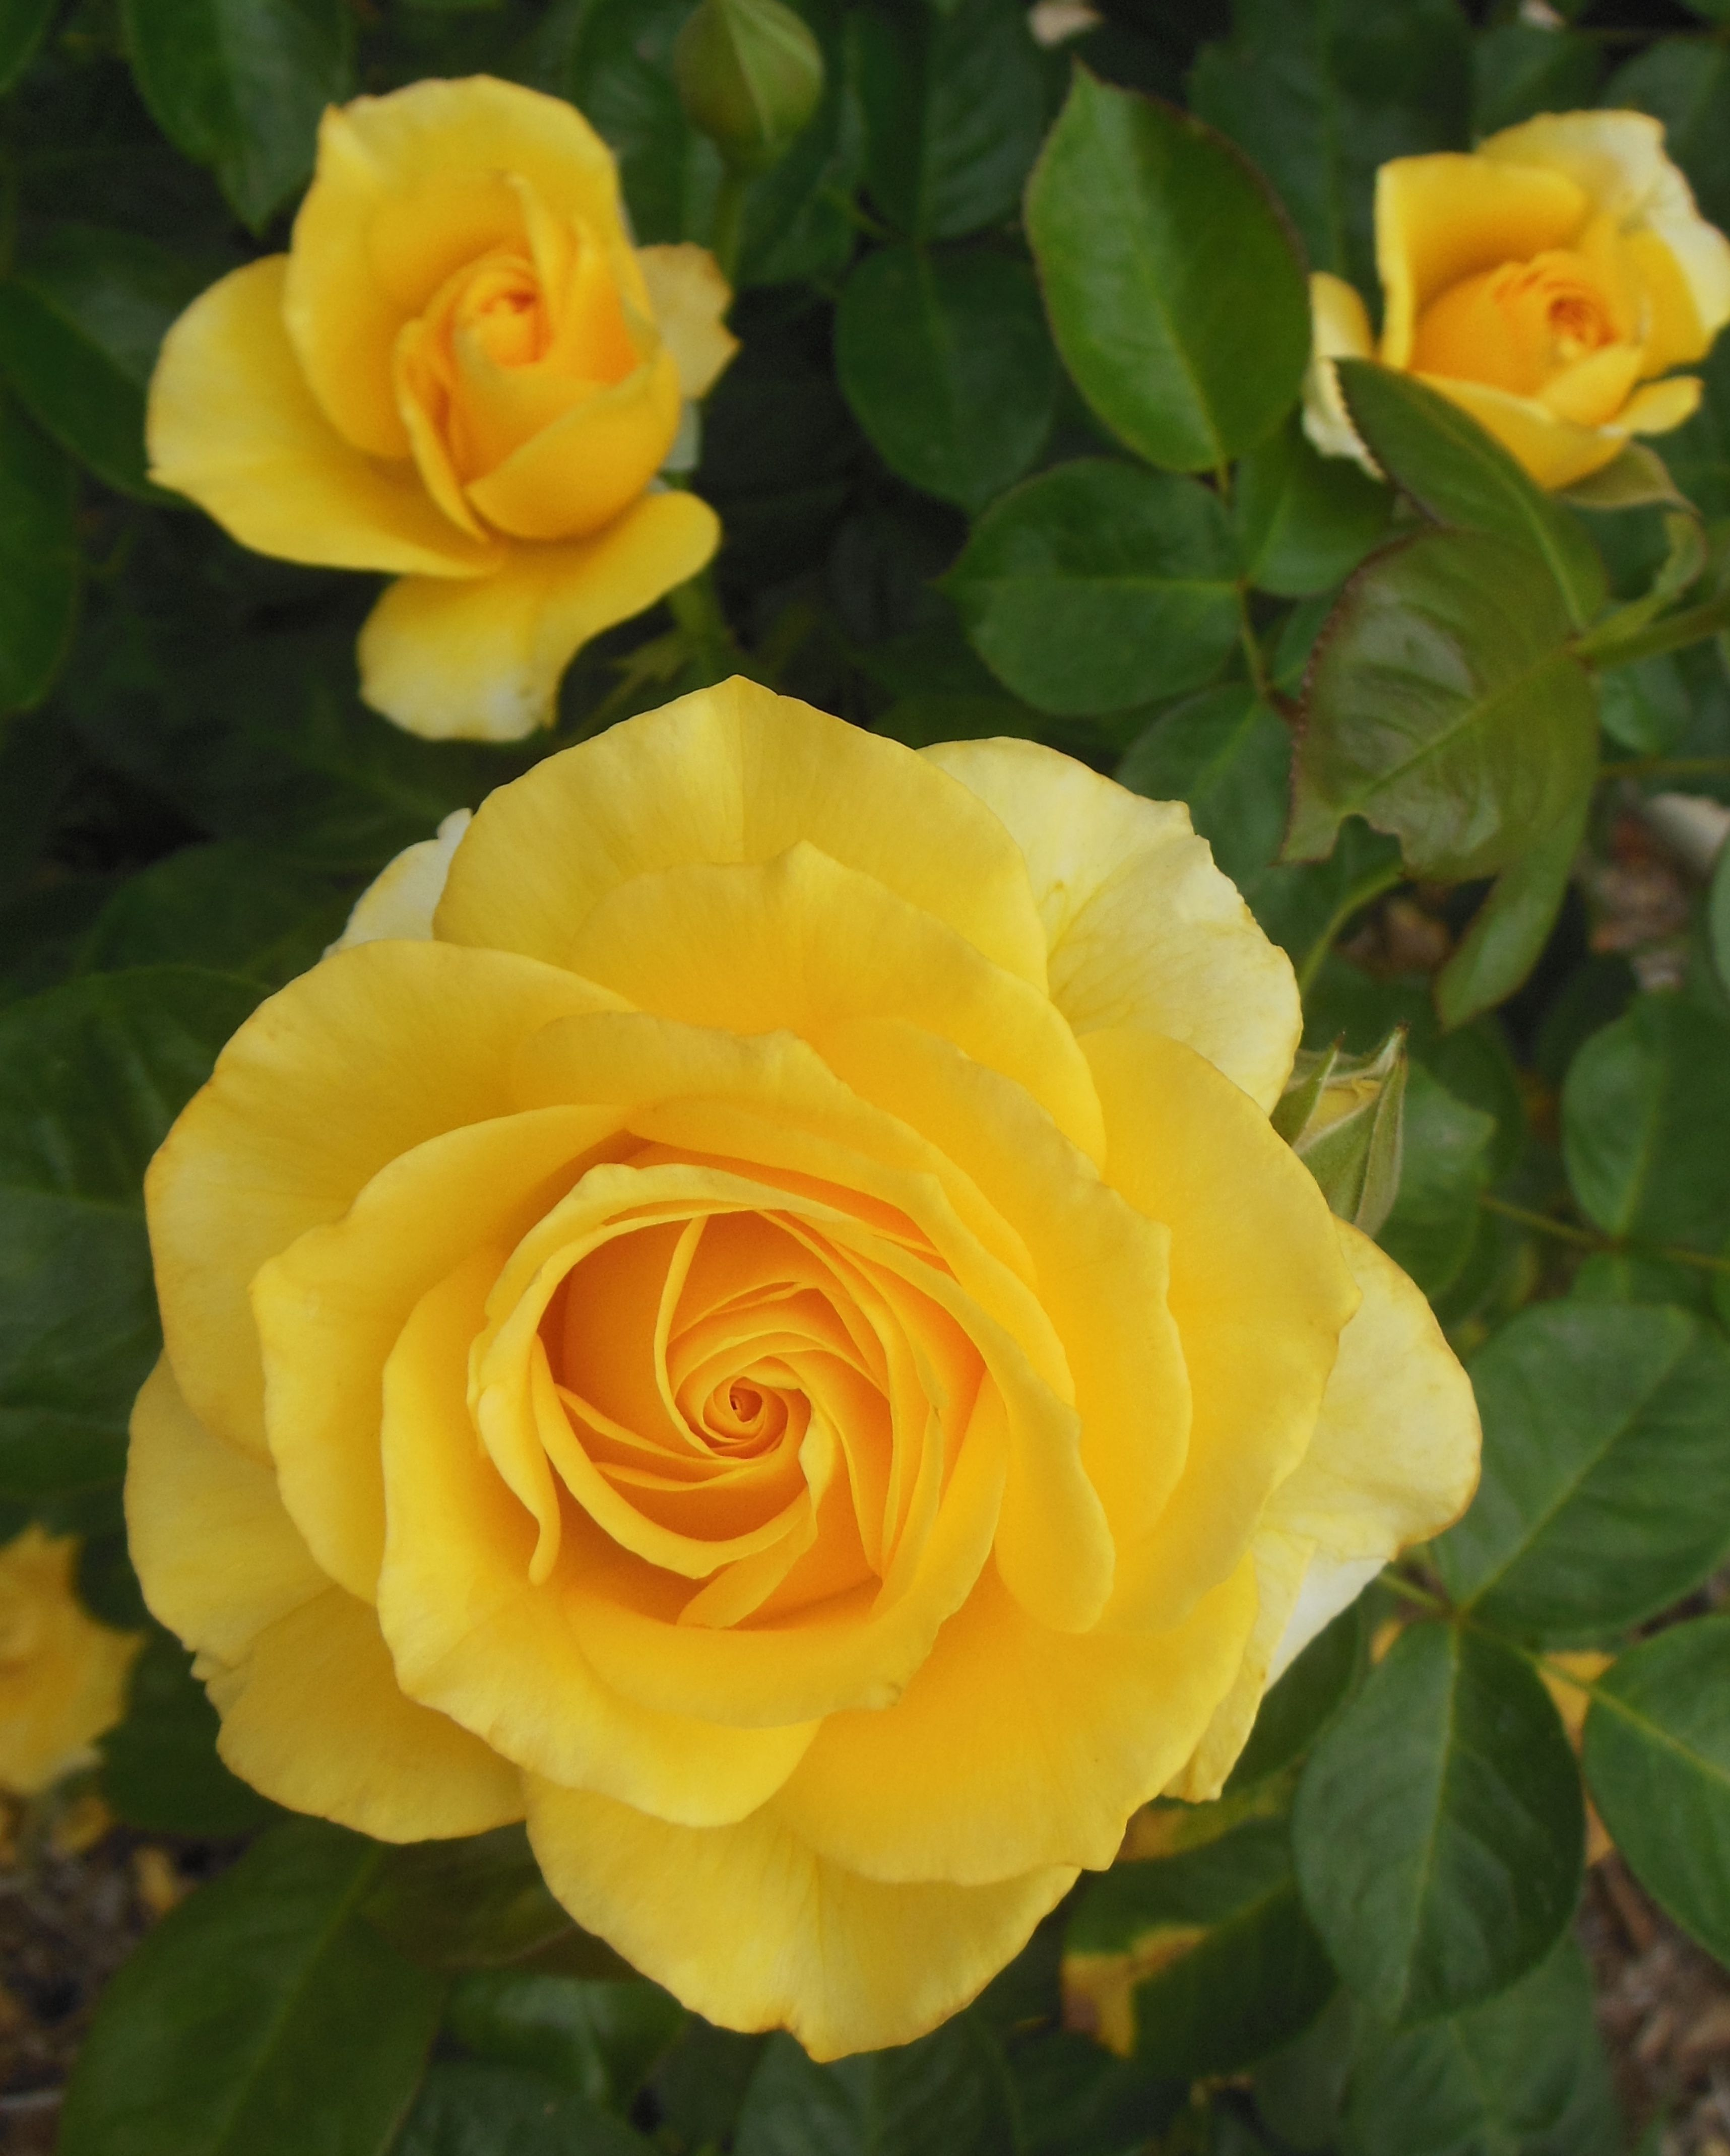 Did You Know Altman Plants Hybrid Tea Shrub Roses Are Low Maintenance Easy To Grow And Disease Resistant Hybrid Tea Roses Rose Varieties Rose Garden Design